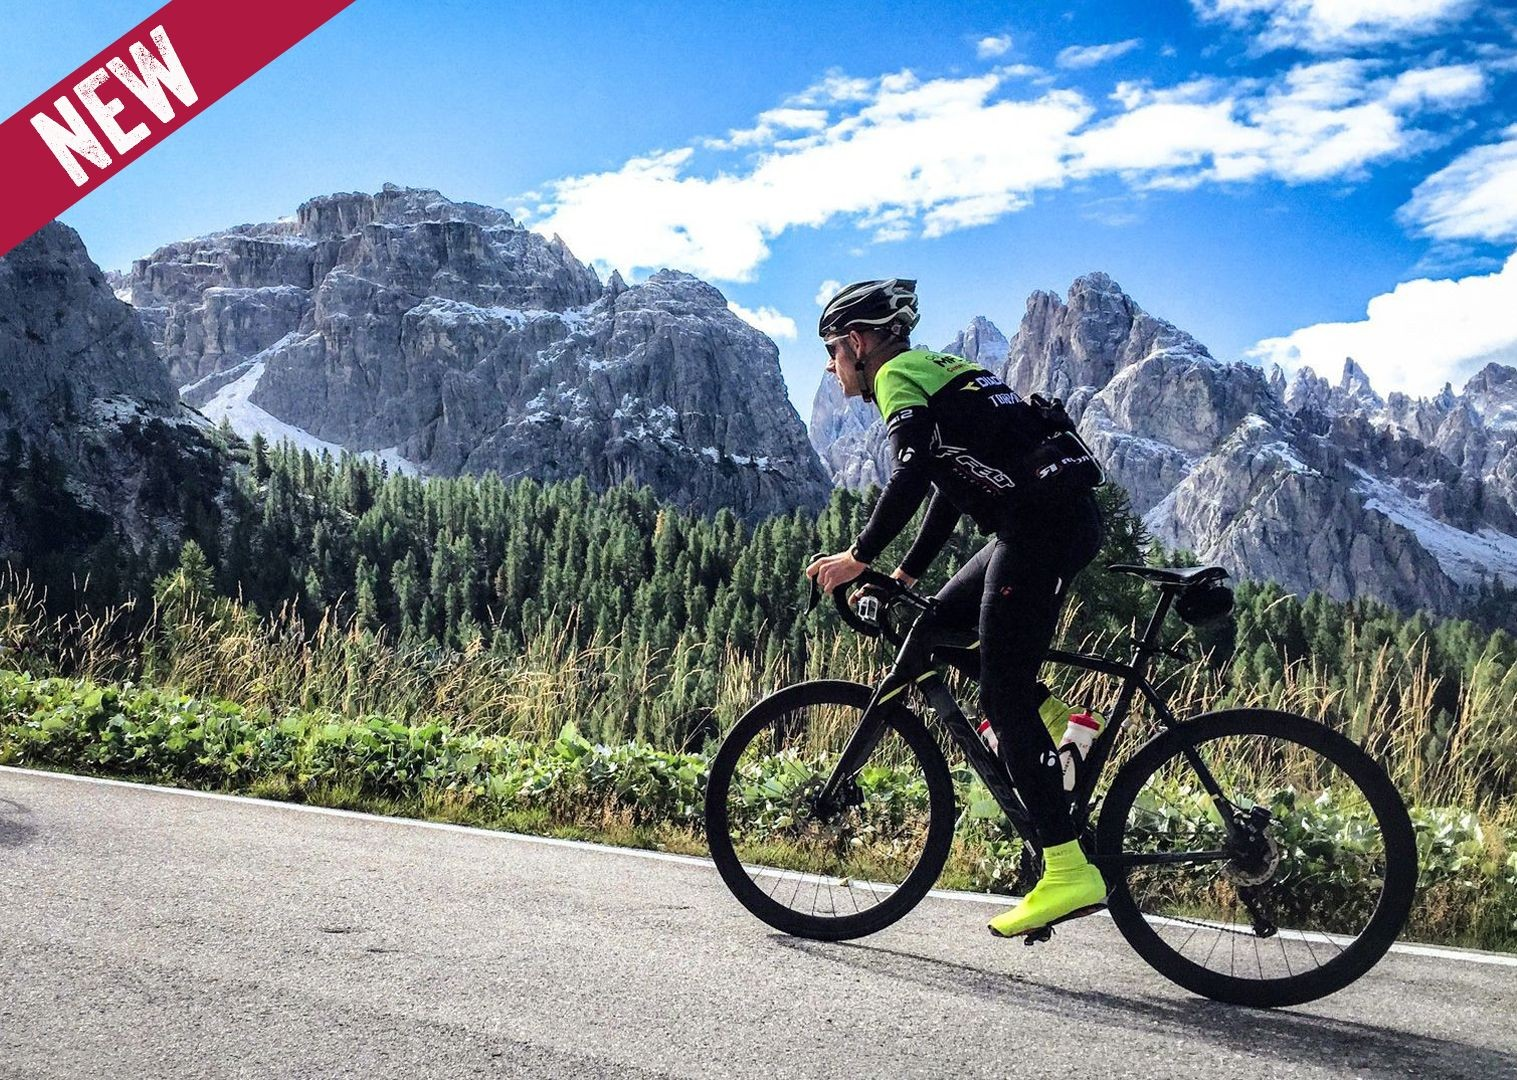 italian-dolomites-road-cycling-holiday.jpg - Italy - Alps and Dolomites - Giants of the Giro - Guided Road Cycling Holiday - Road Cycling